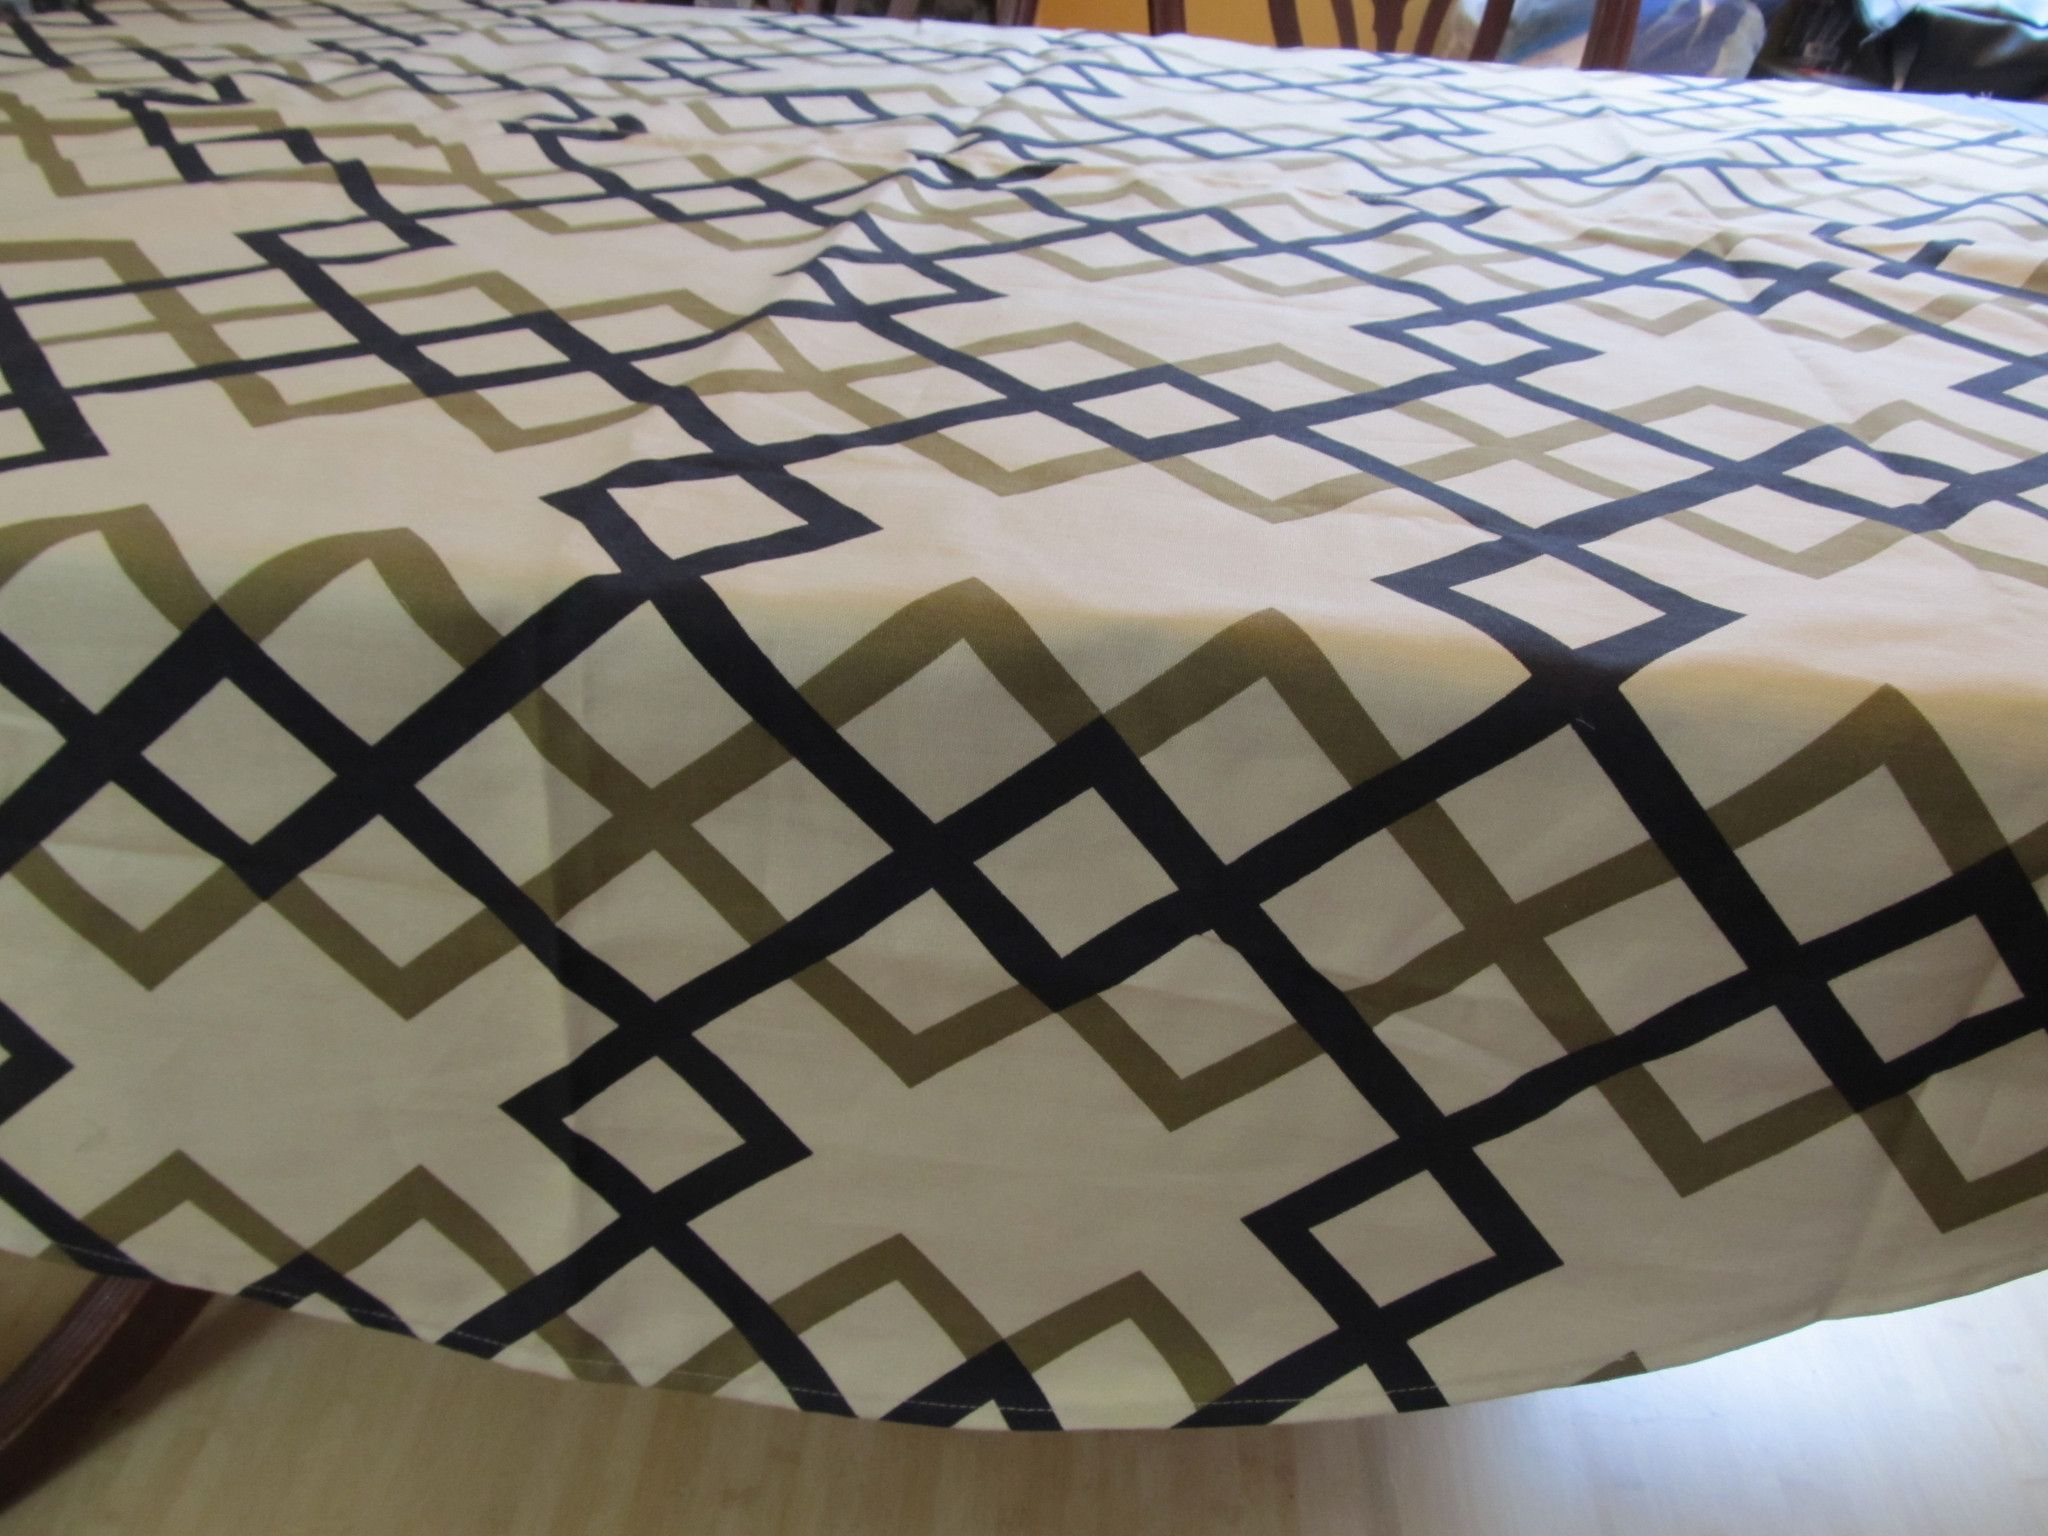 Table Cloth #07, Round Modern Geometric Design, made from Heavy Cotton